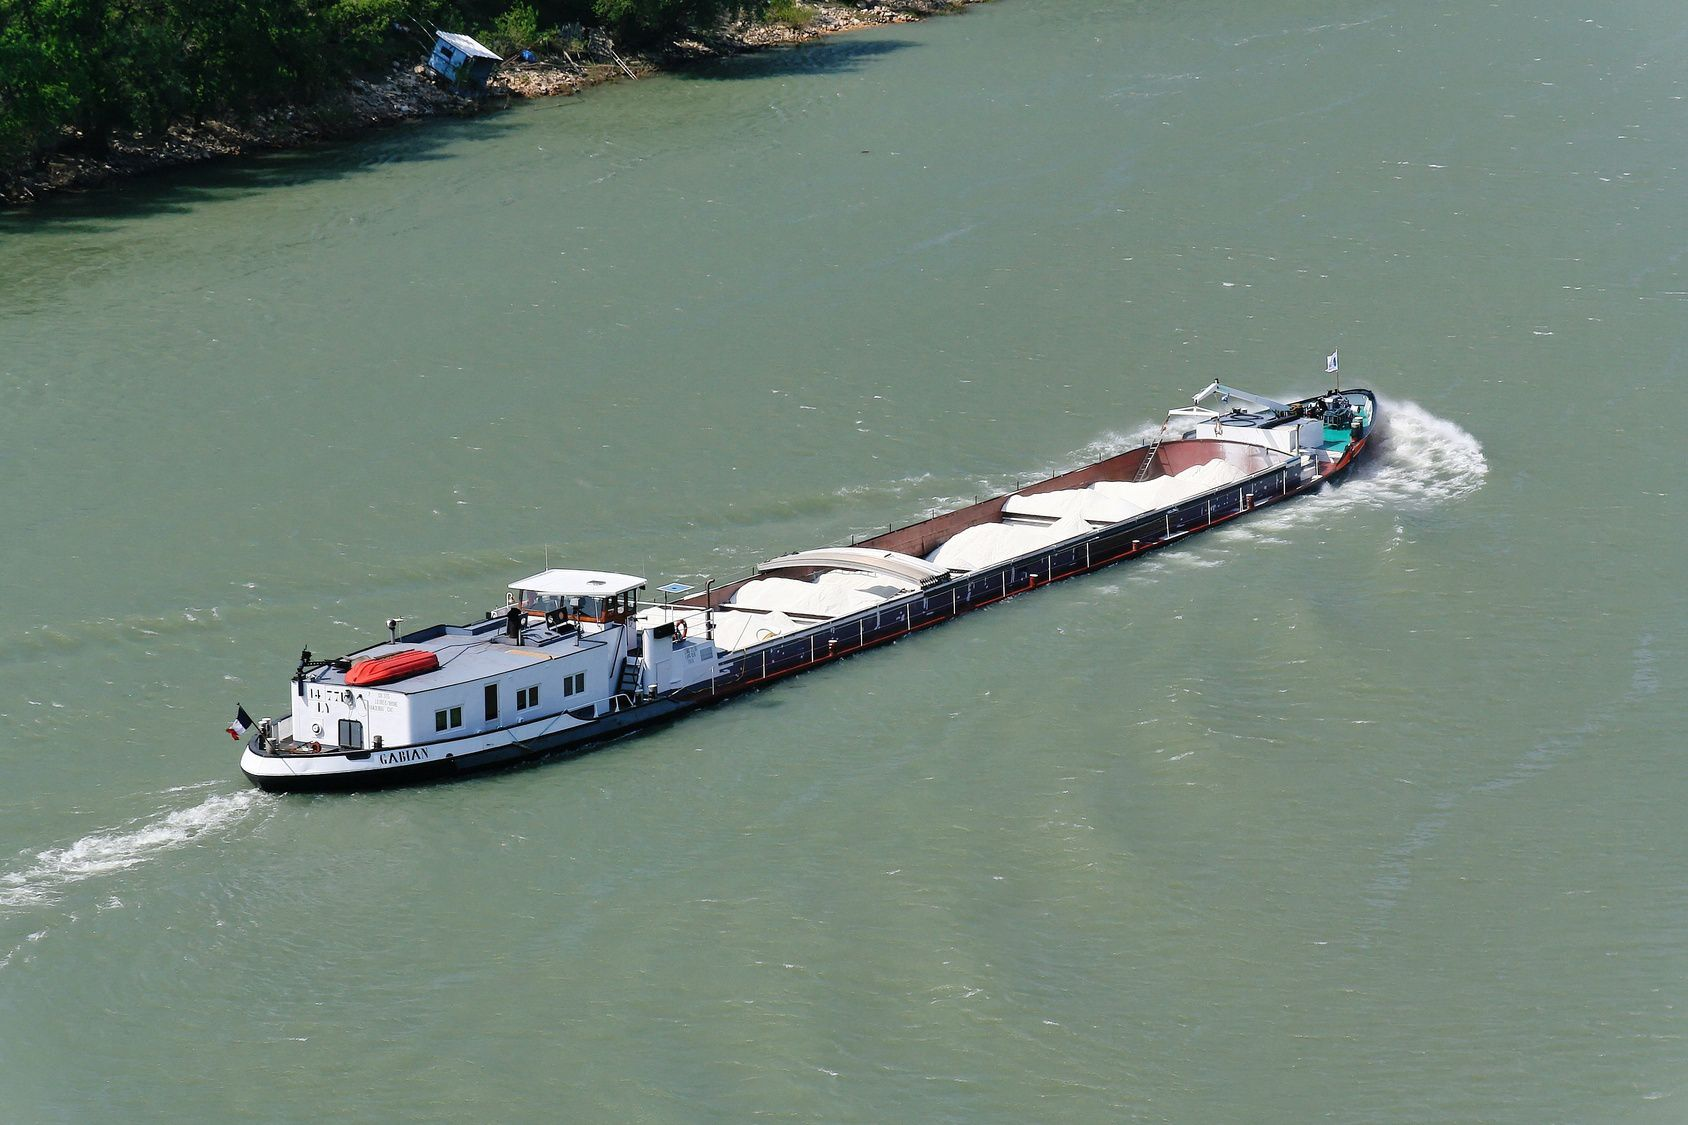 An aerial view of a cargo ship